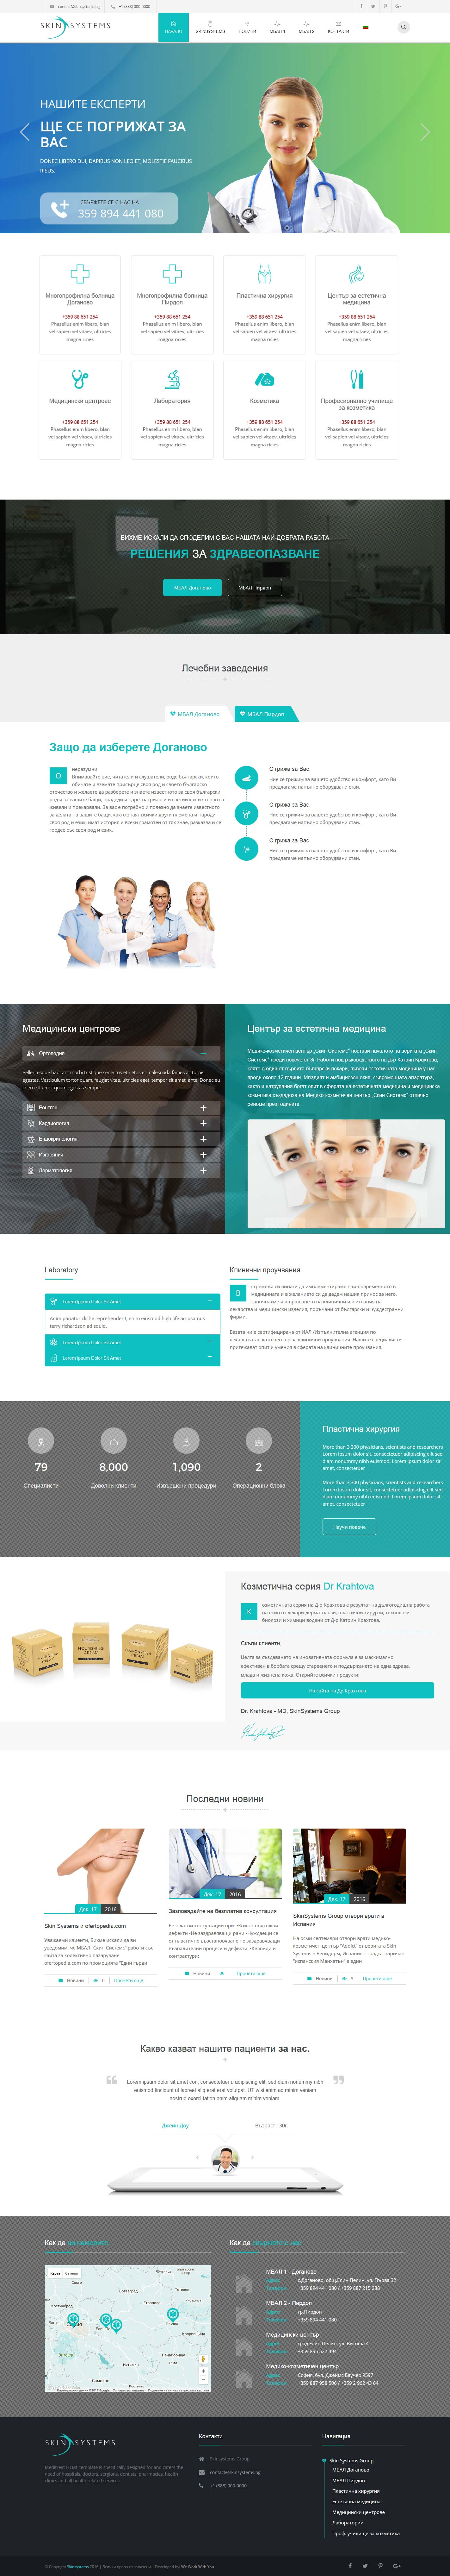 Skin Systems